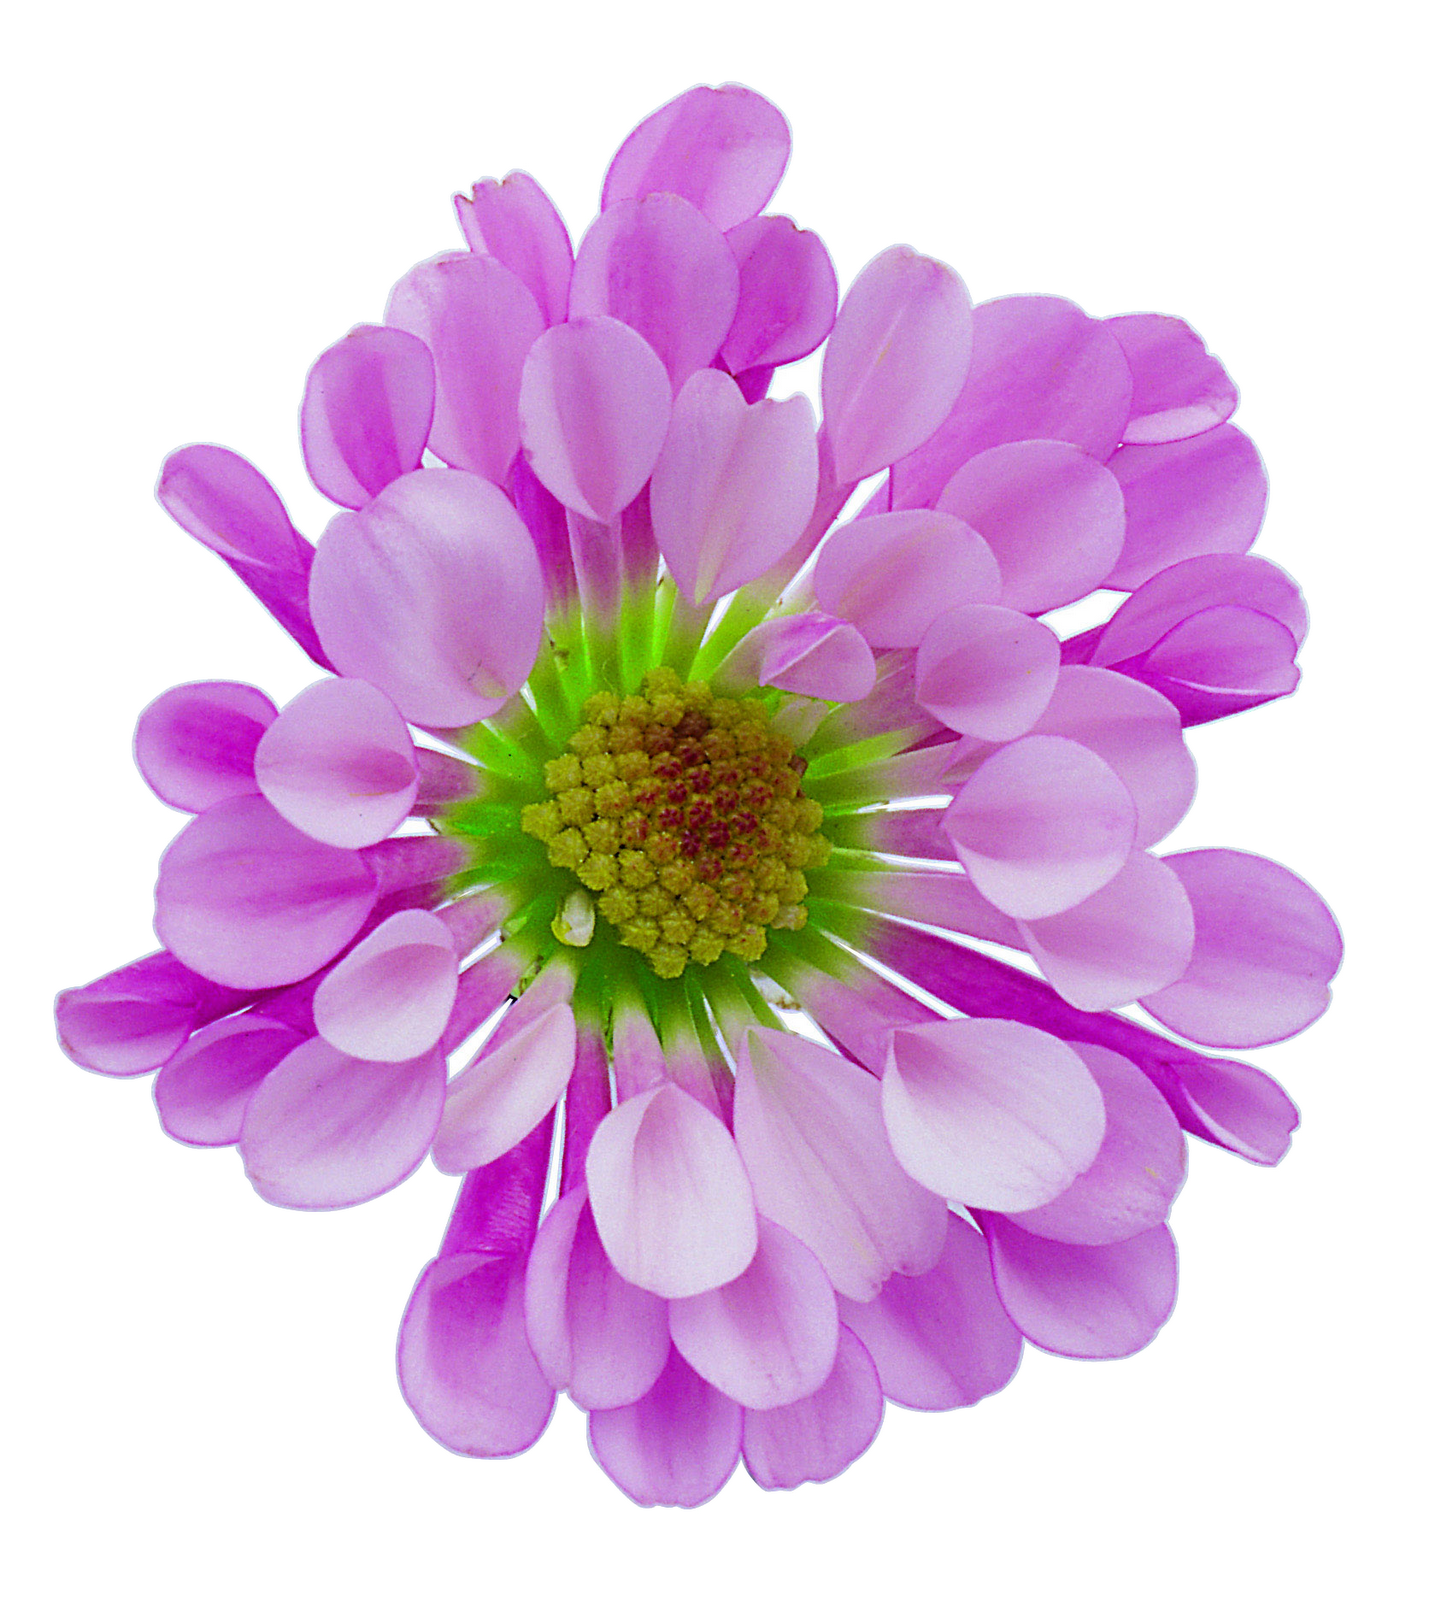 Flower Png Free Images Download